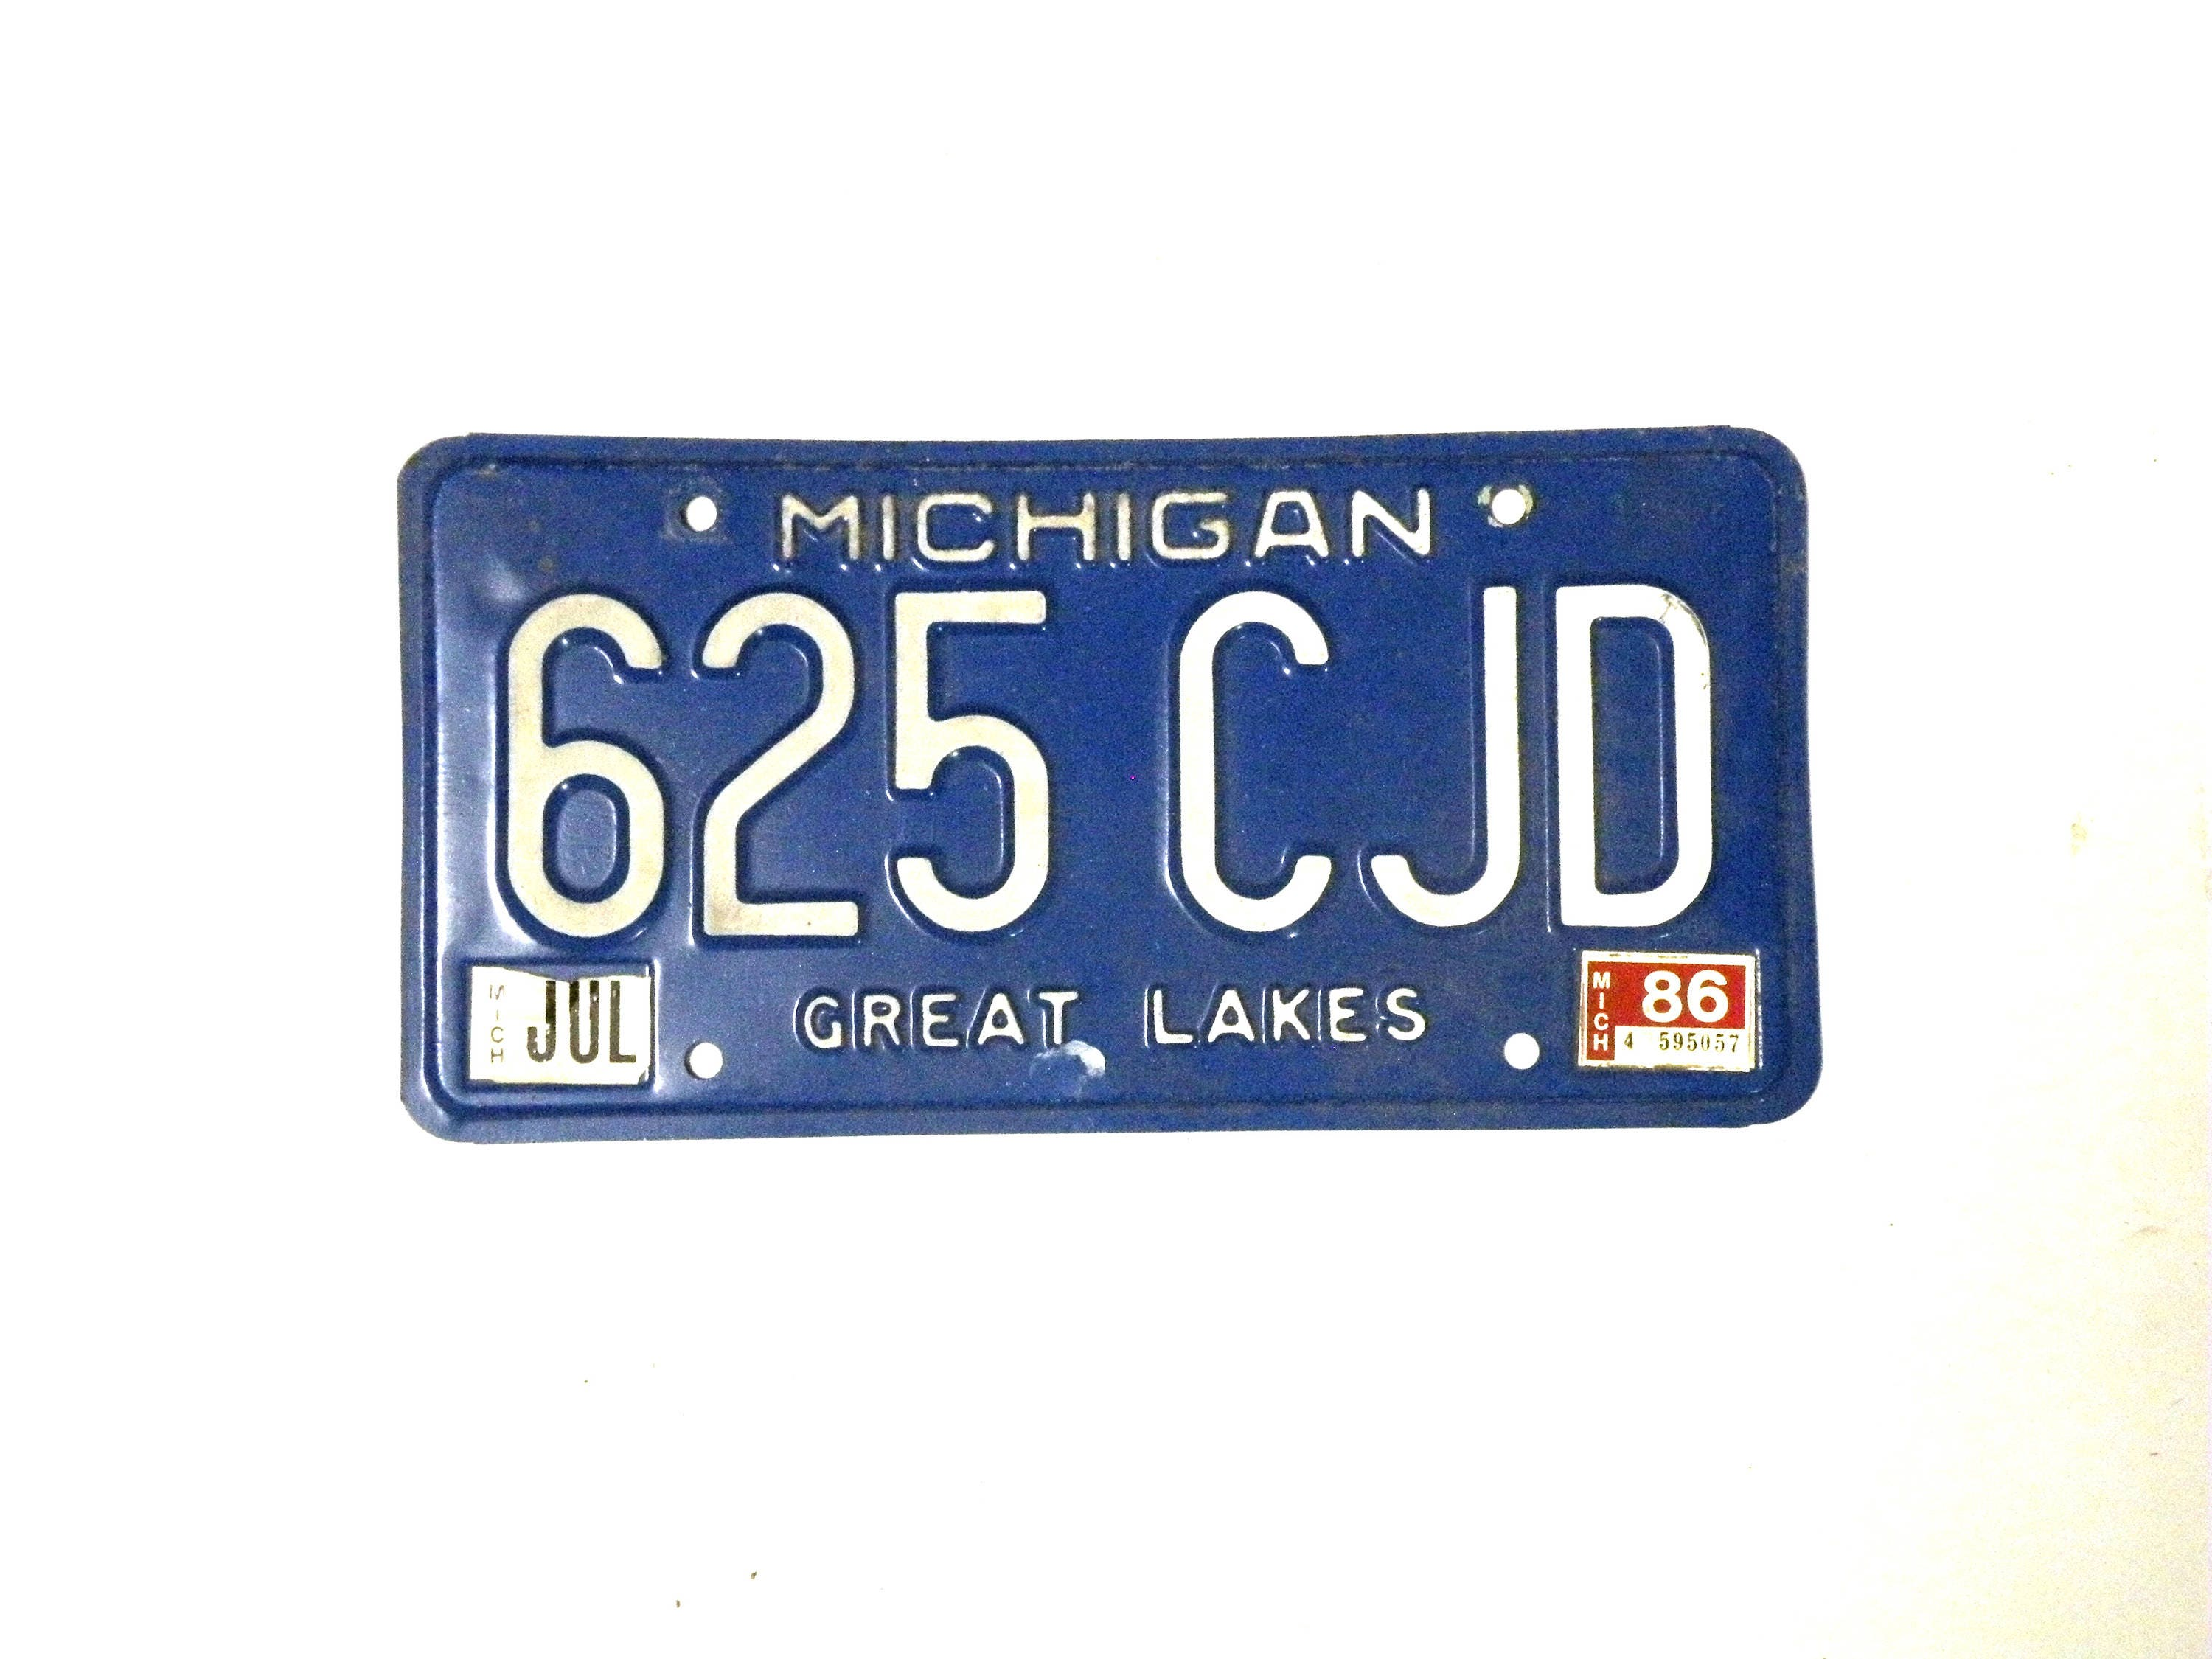 Michigan License Plate Great Lakes License Plate Vintage Metal